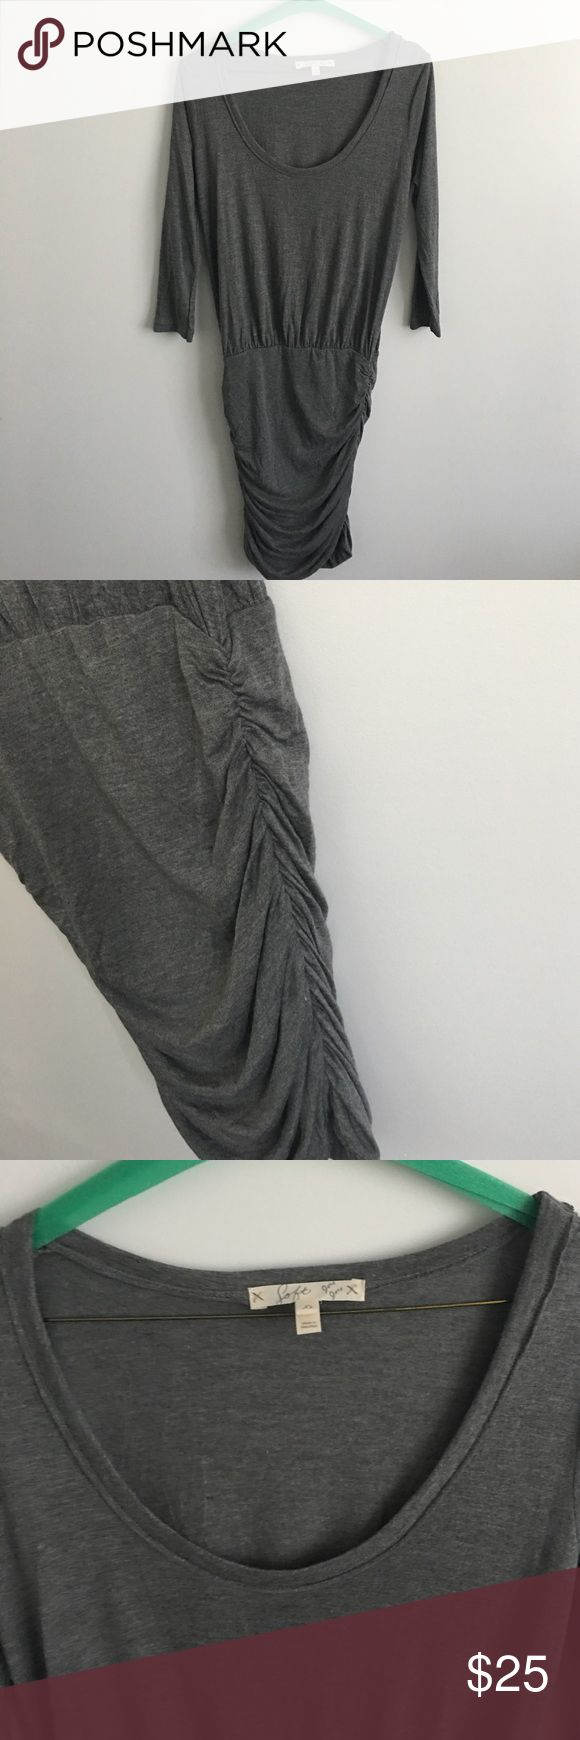 Soft joie dress Never worn soft joie dress. Gray. 3/4 sleeve. Scoop neck. Ruched bottom to accentuate curves. 100% modal fabric. Smoke free. No trades Joie Dresses Mini